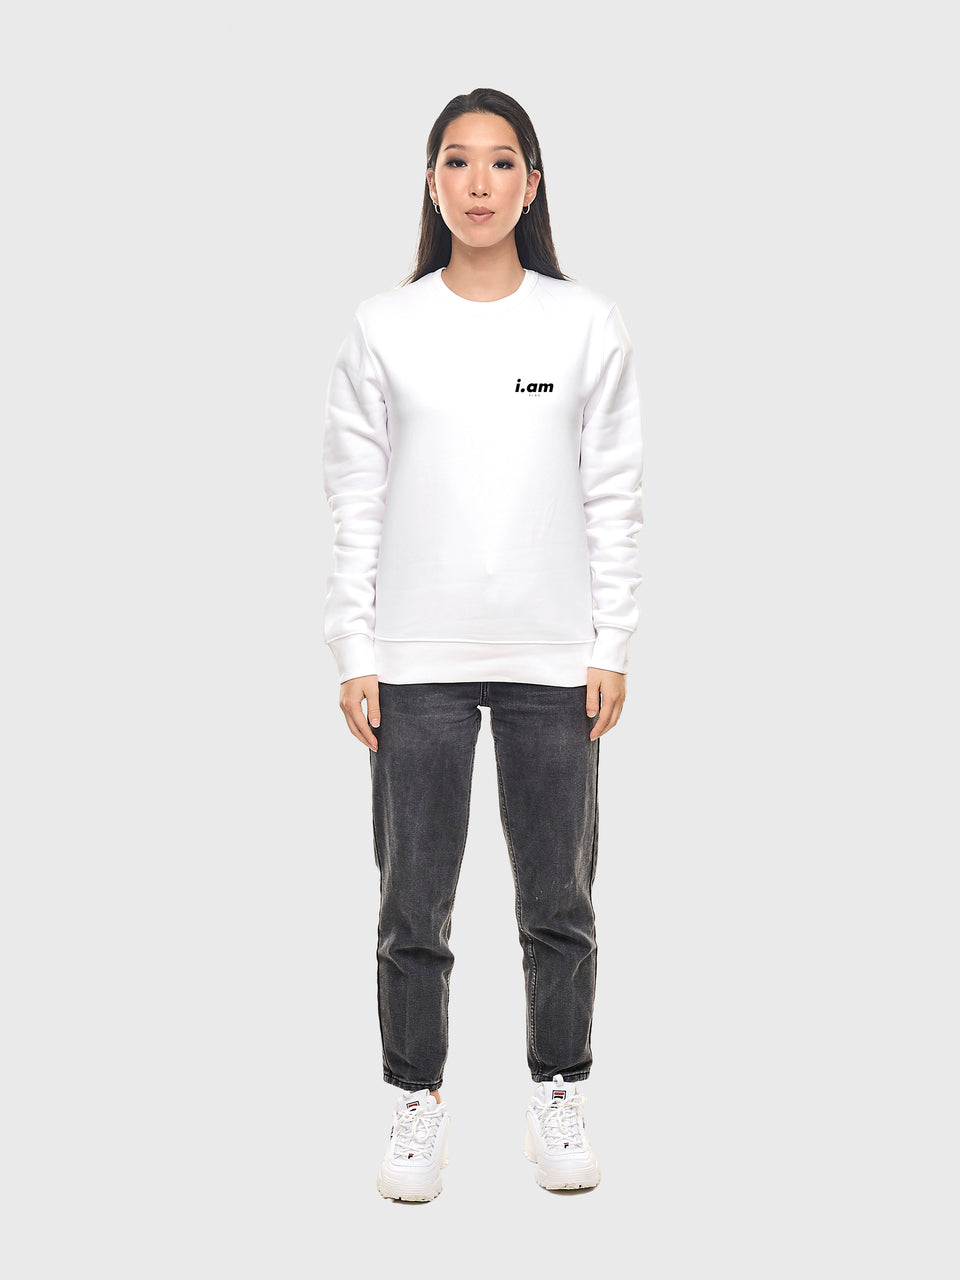 The connect - White / Grey - Unisex sweatshirt